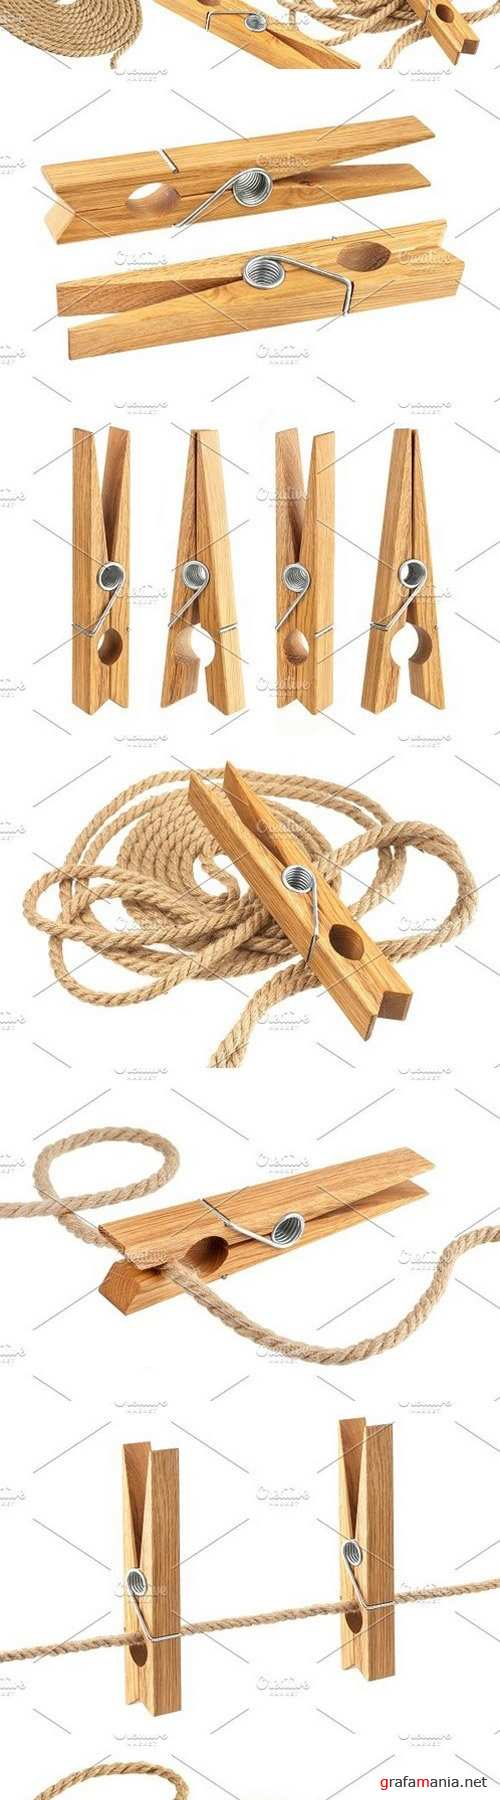 Clothes pin and rope 1331394